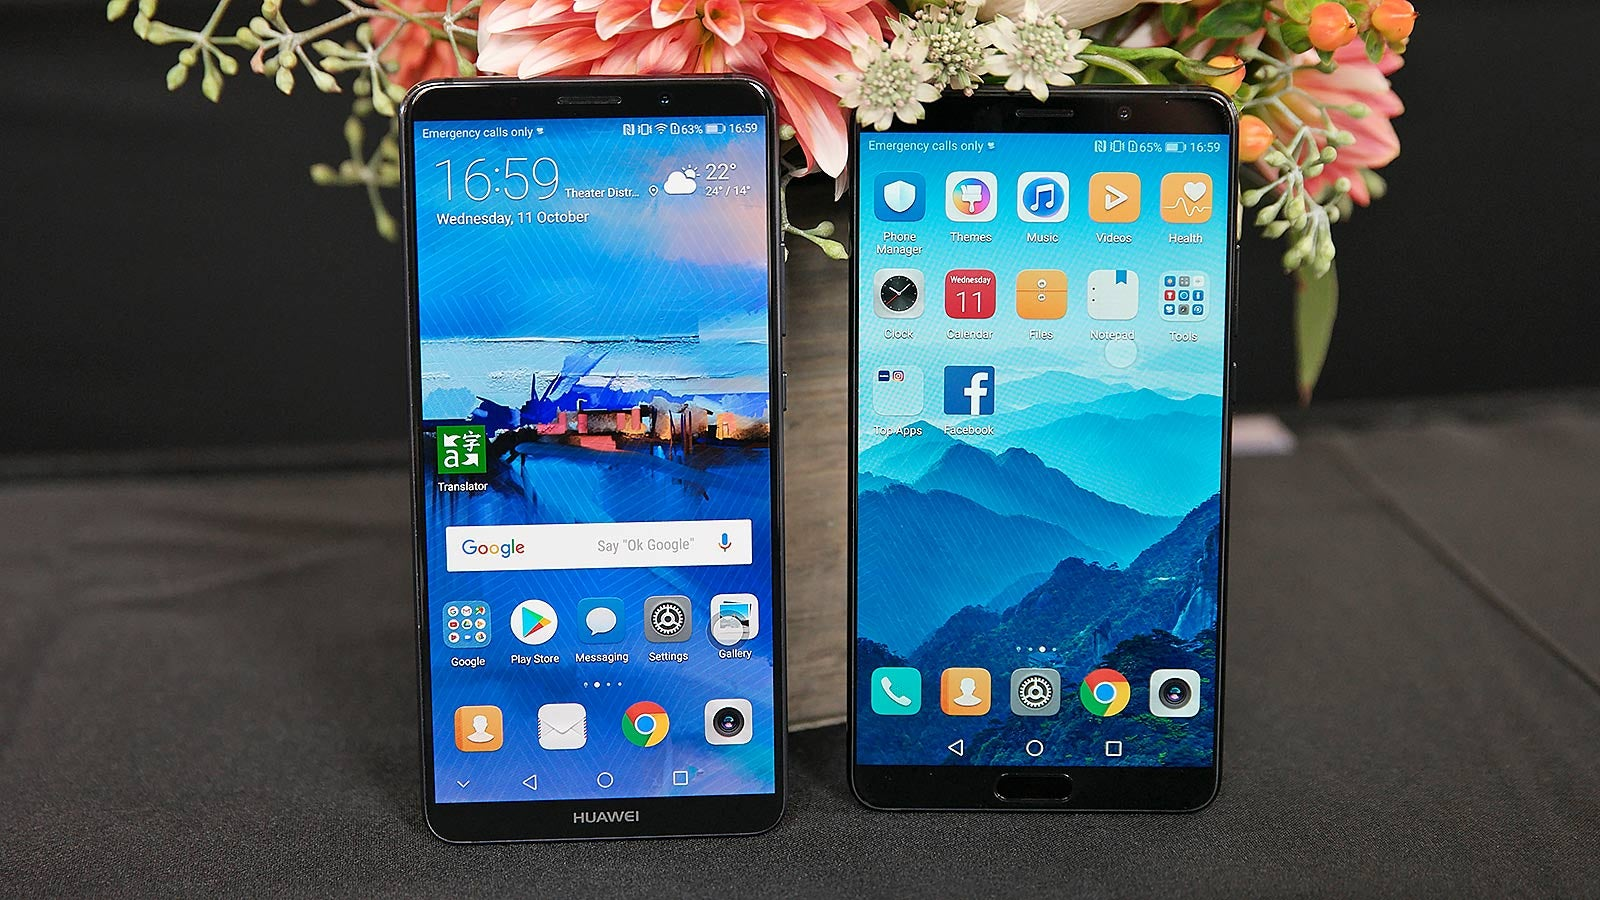 Huawei's Mate 10 Wants to be the Smartest Phone on the Block, But